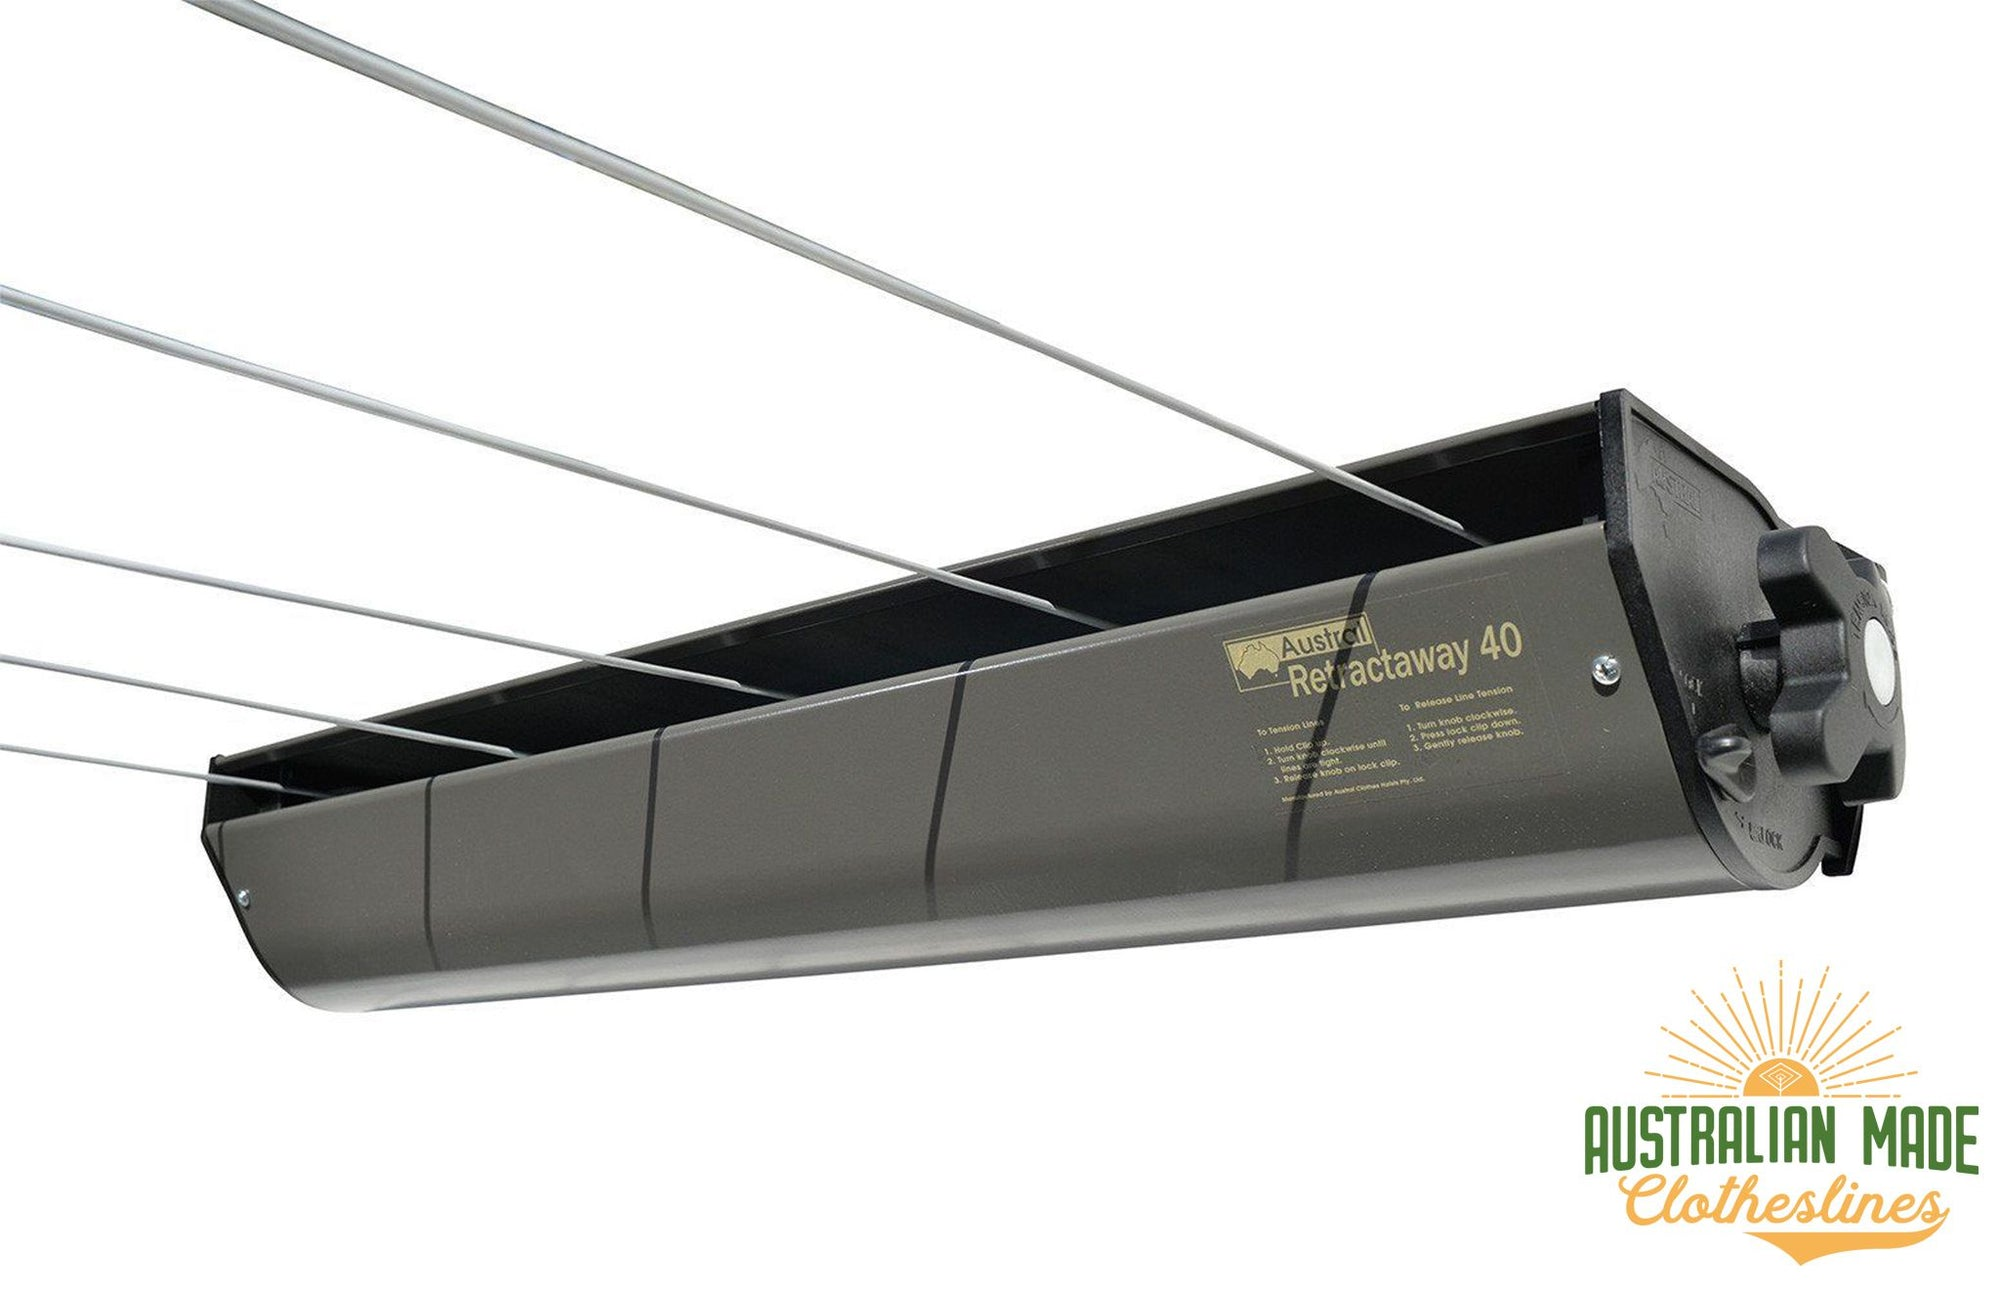 Austral Retractaway 40 Clothesline - Woodland Grey - Australian Made Clotheslines